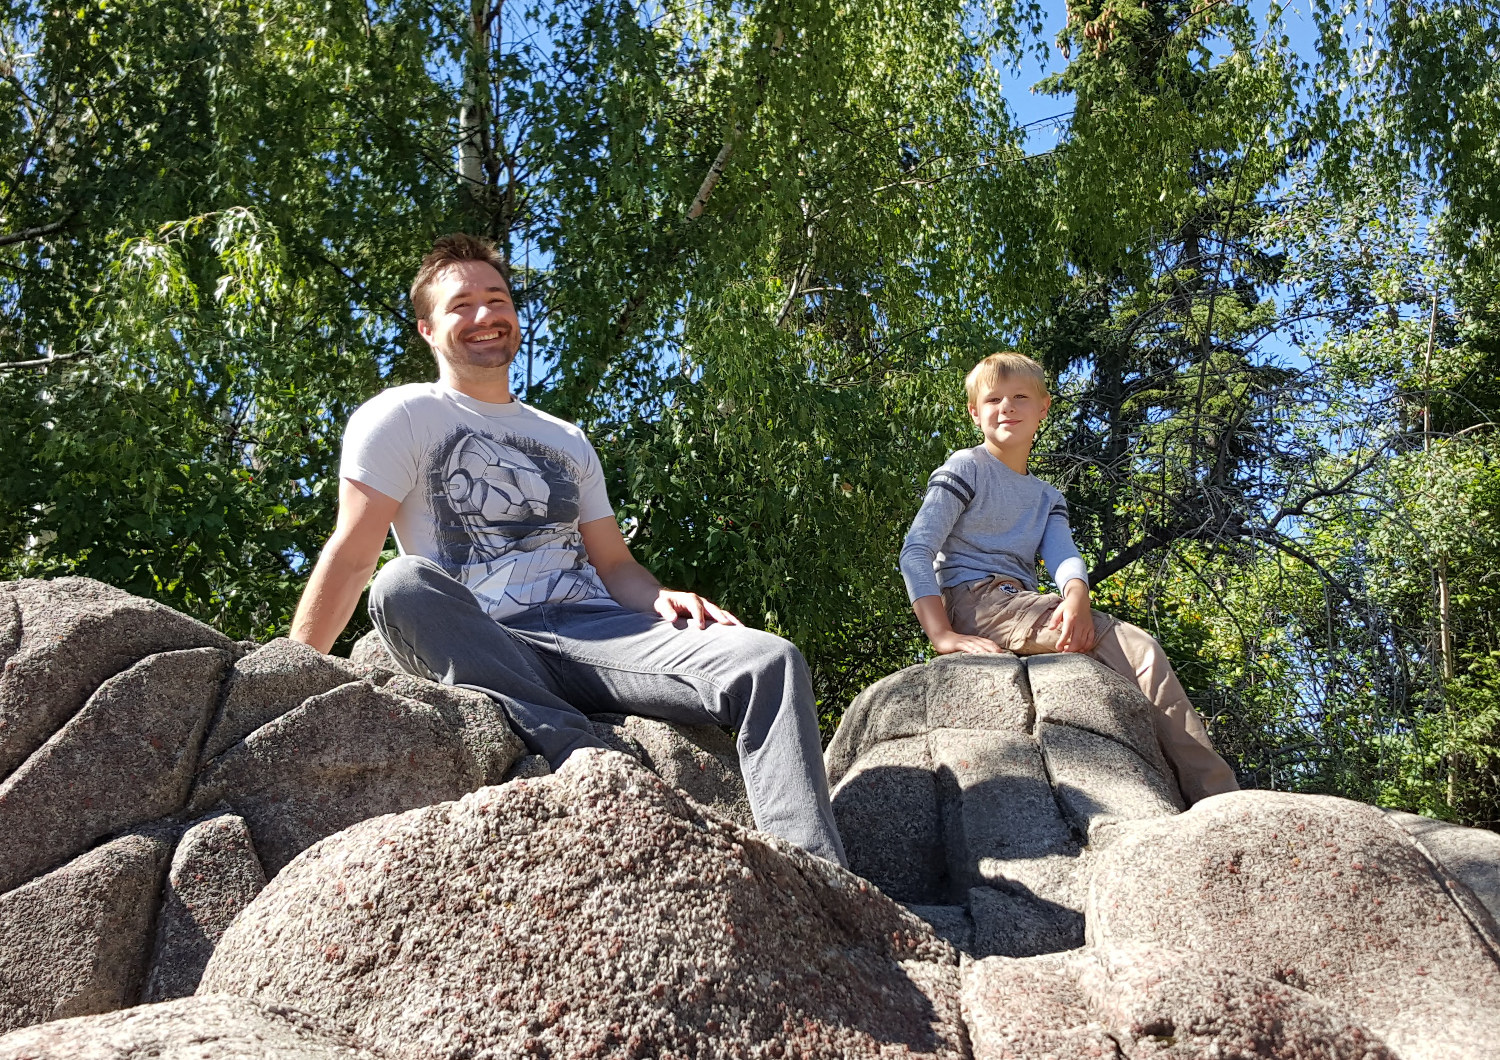 This is me and my son at the Calgary Zoo, contemplating the world of SEO and creating more value for the world